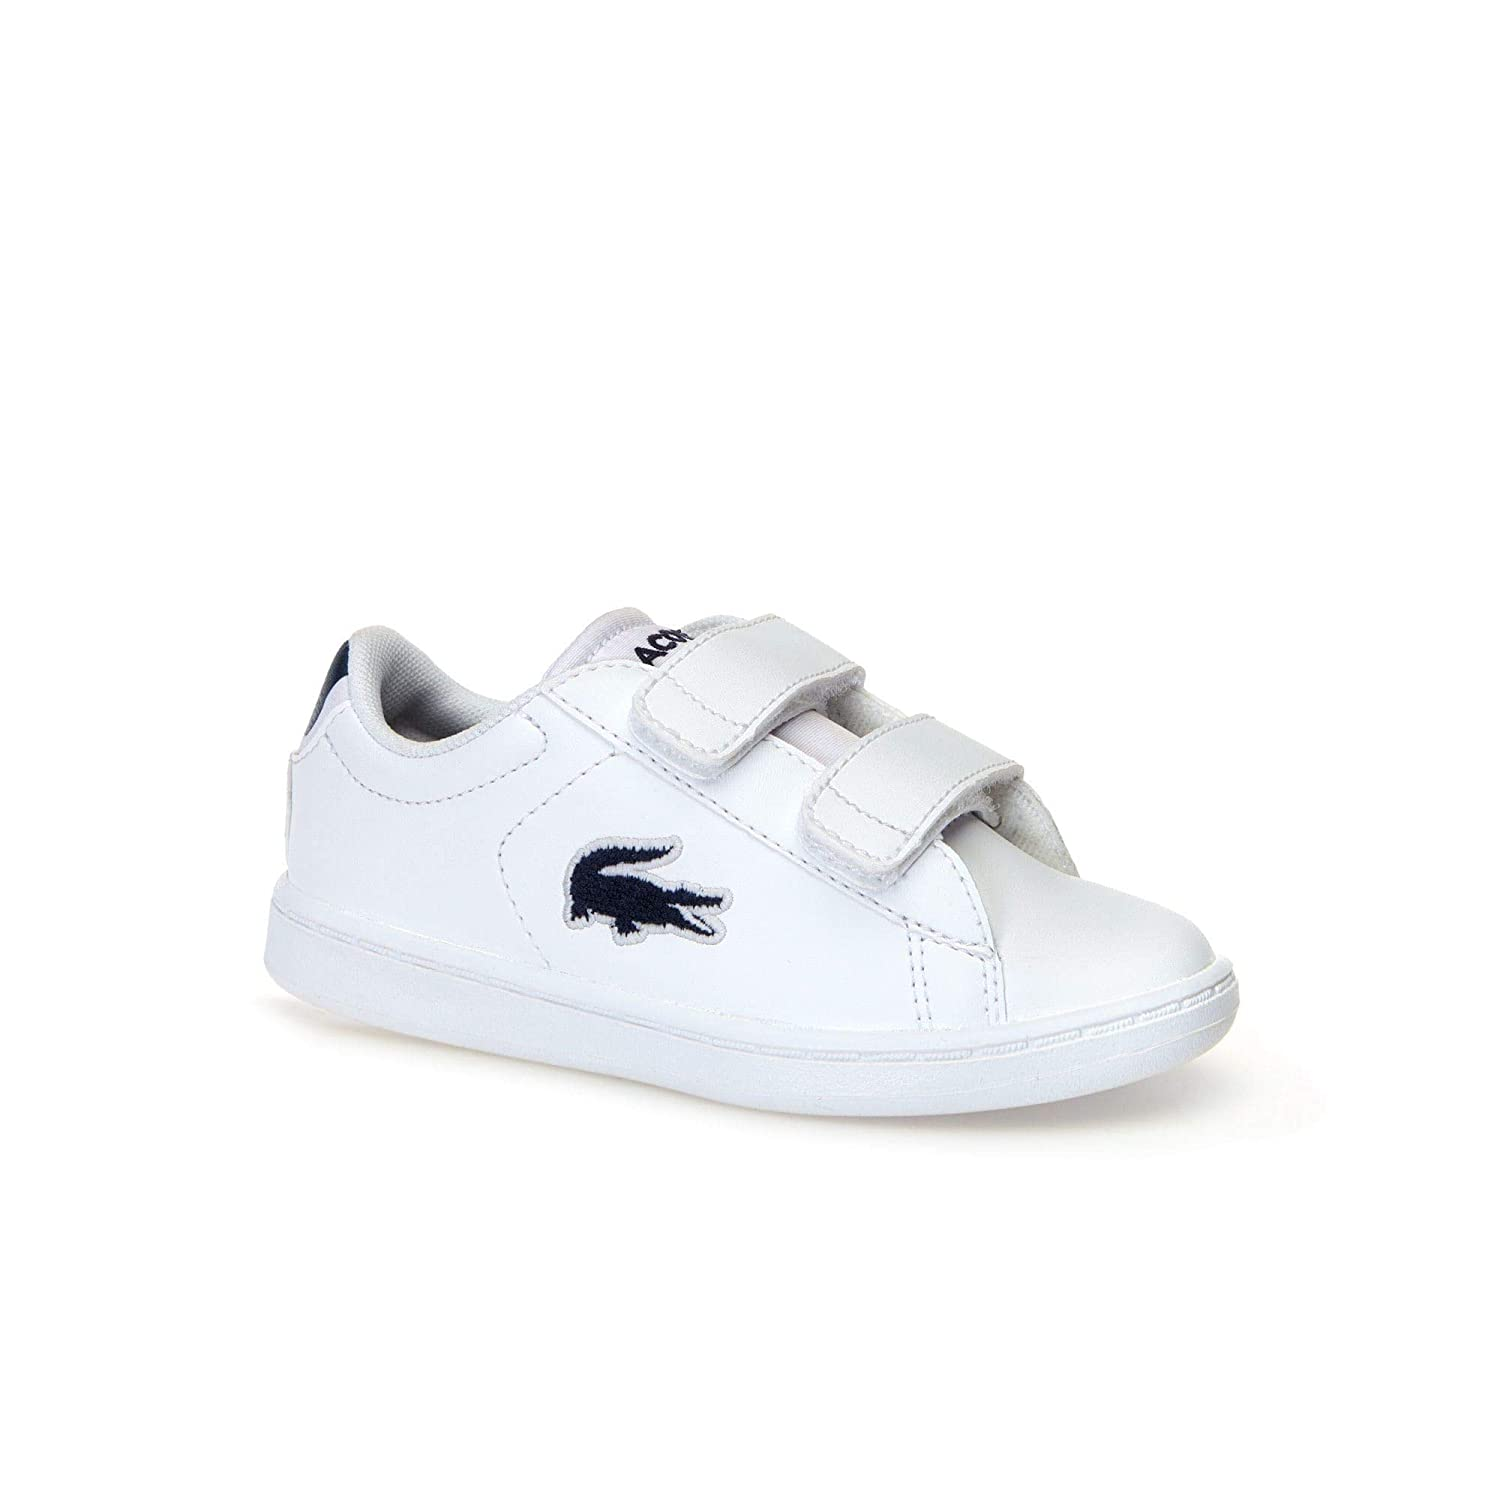 Lacoste Sport - Chaussures Sport Enfant Carnaby Evo - 36SPI0001